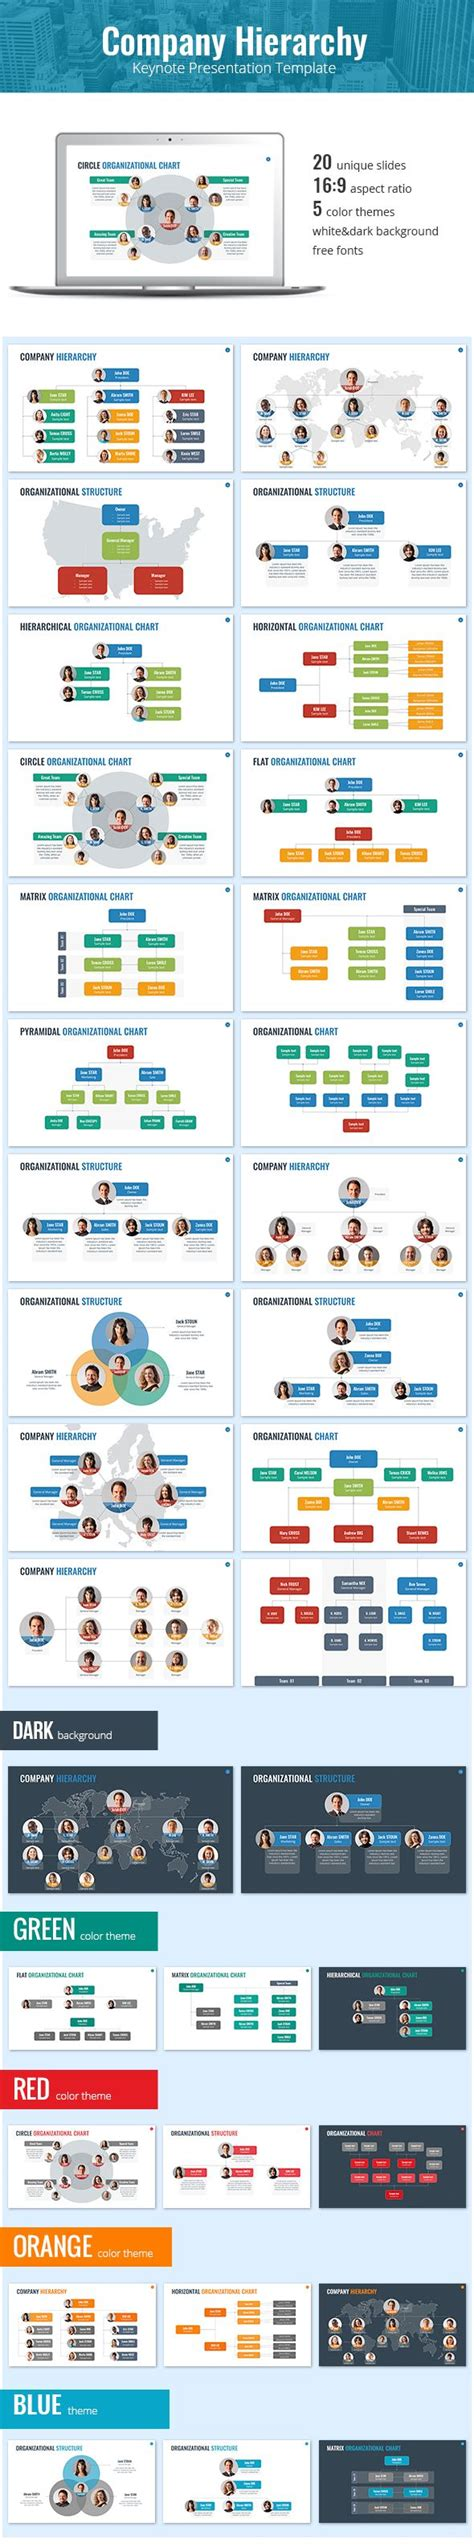 organisational design proposal best 25 organizational chart ideas on pinterest